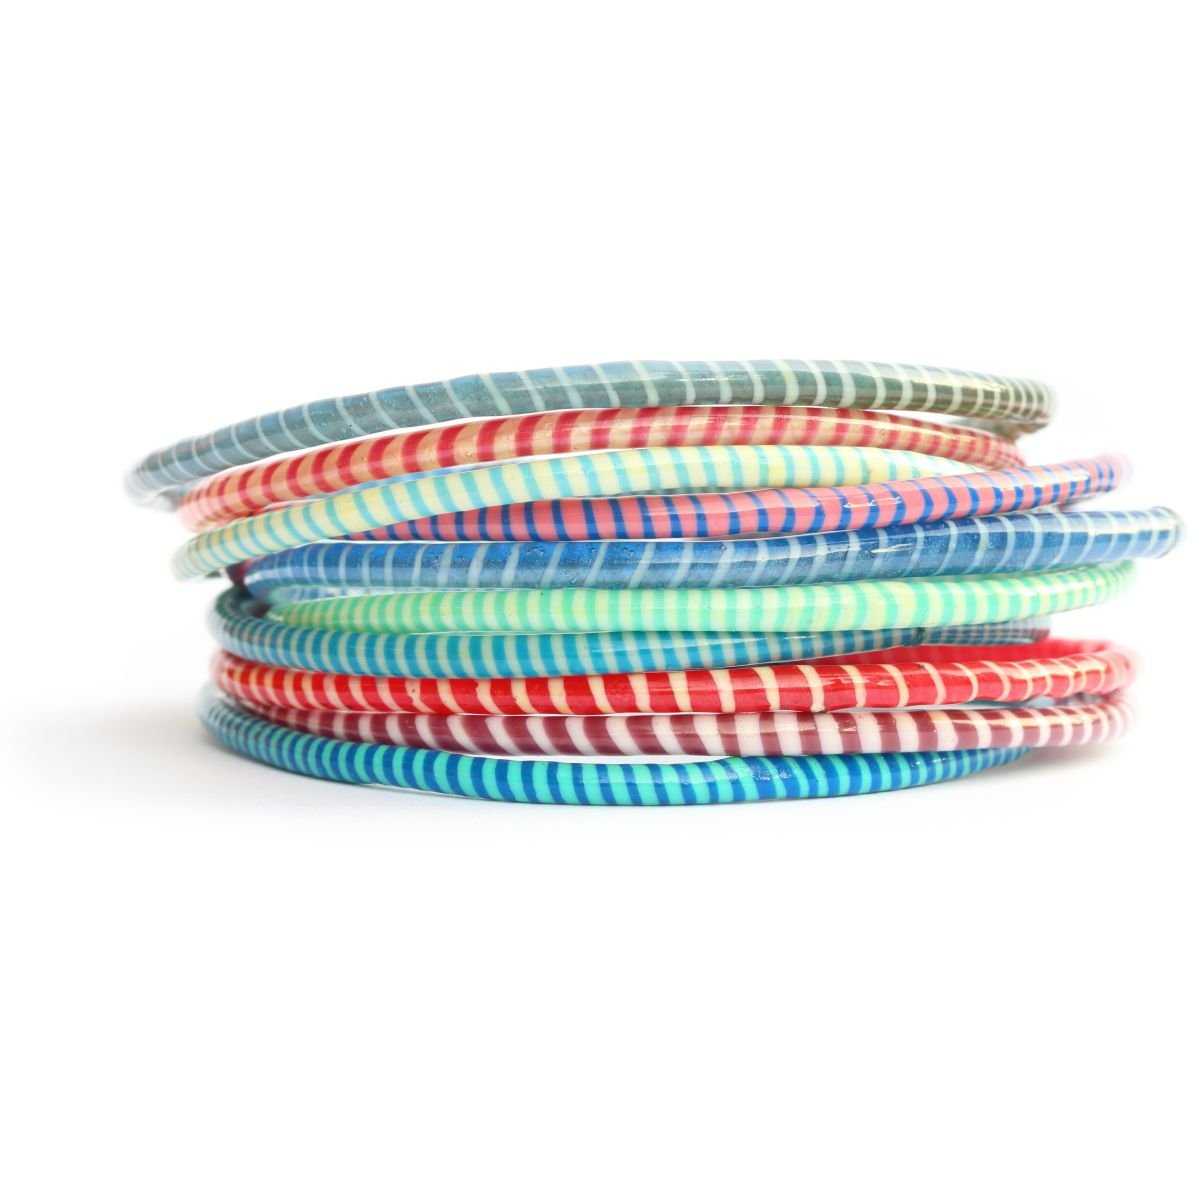 10 Assorted Color Recycled Flip Flop Bracelets Hand Made in Mali, West Africa by New Charms